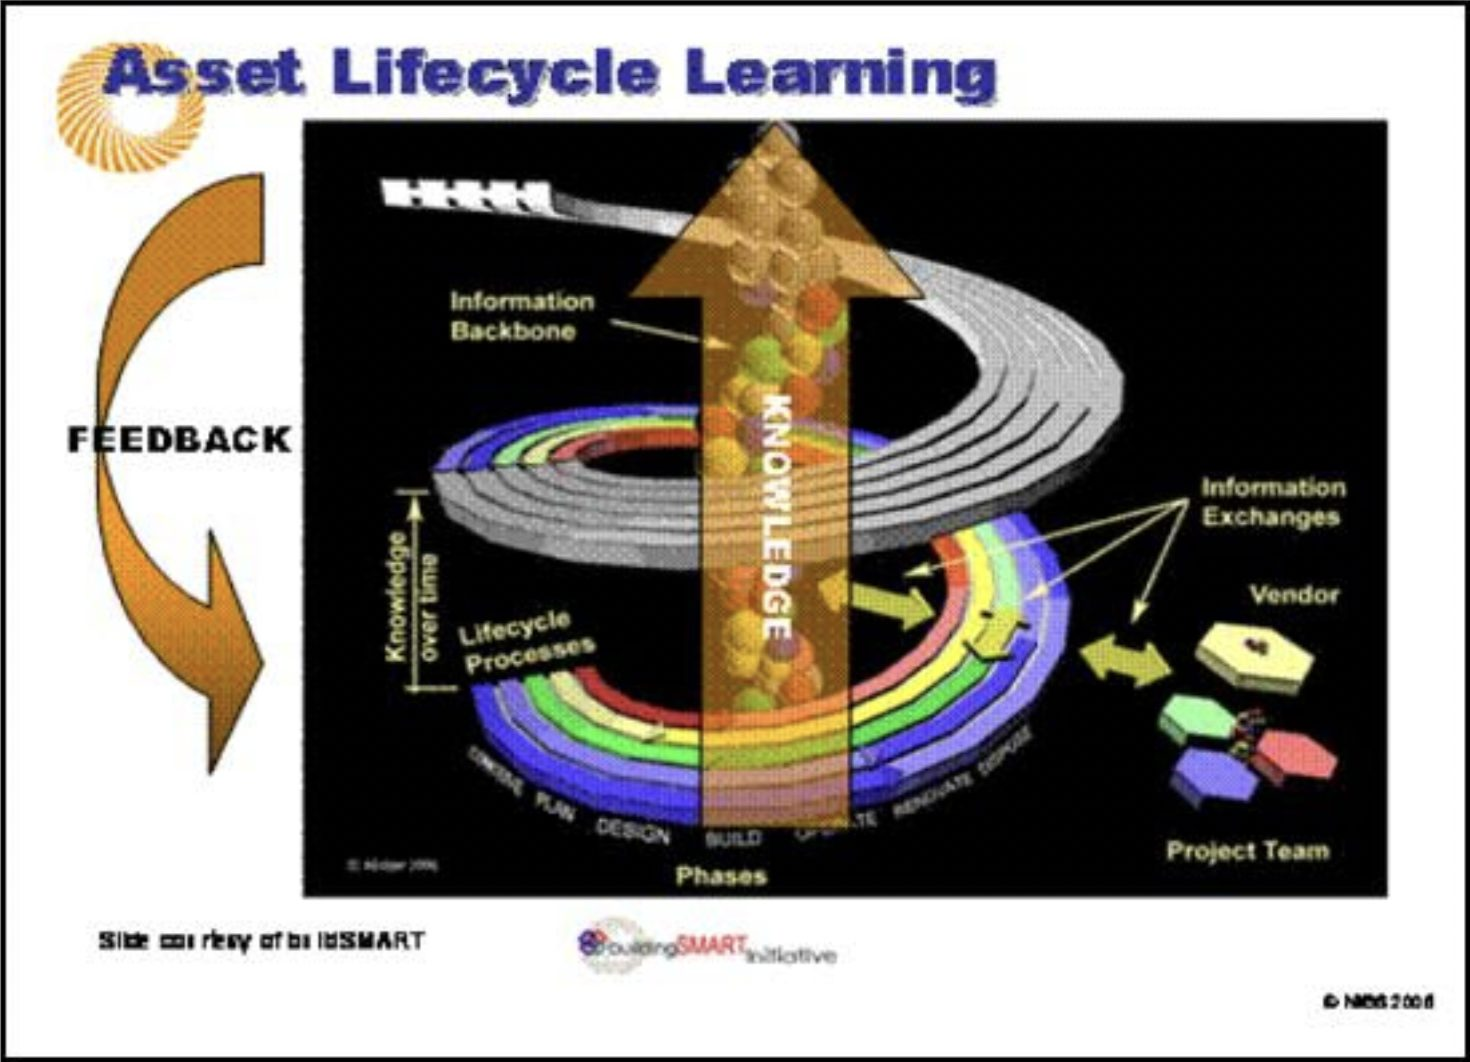 Diagram of Asset Life Cycle Learning